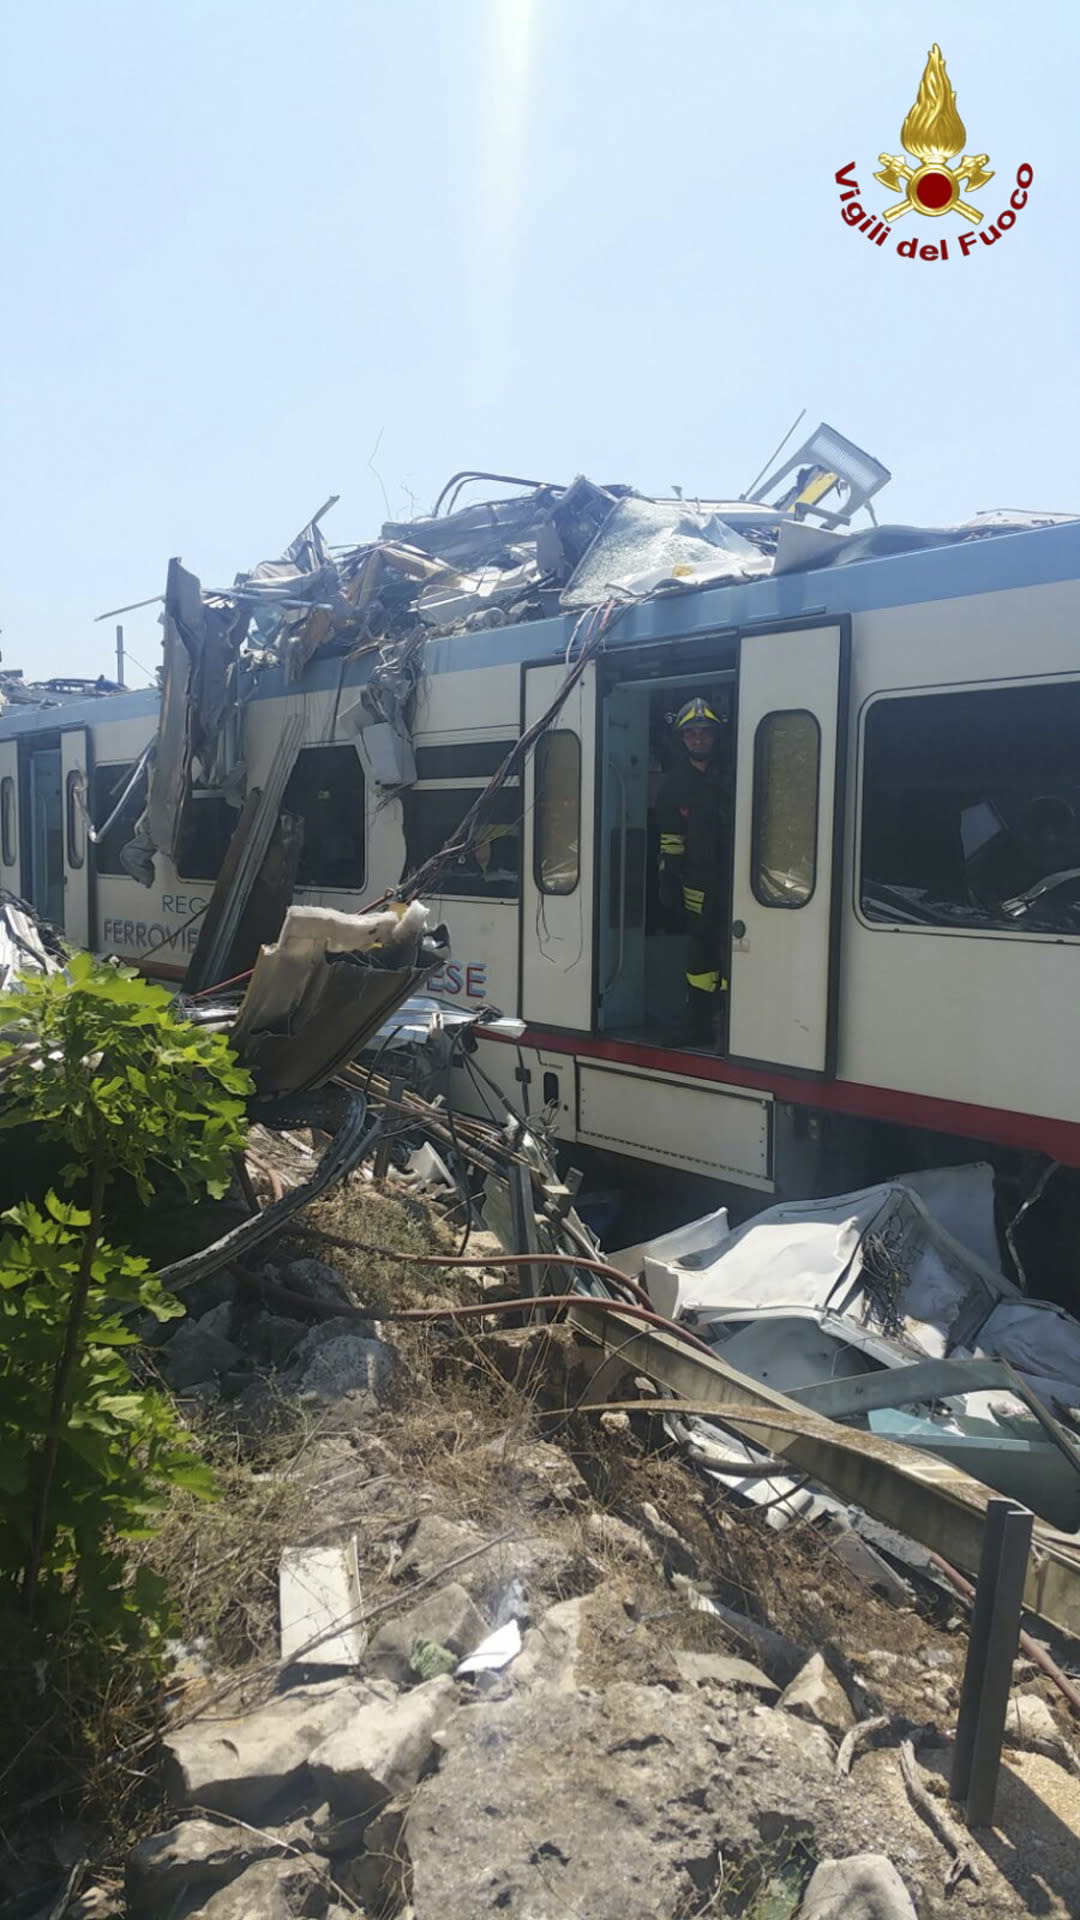 <p>The wreckage of a crumpled wagon at the scene of a train accident after two commuter trains collided head-on in the southern region of Puglia, killing several people, Tuesday, July 12, 2016. (Italian Firefighter Press Office via AP) </p>